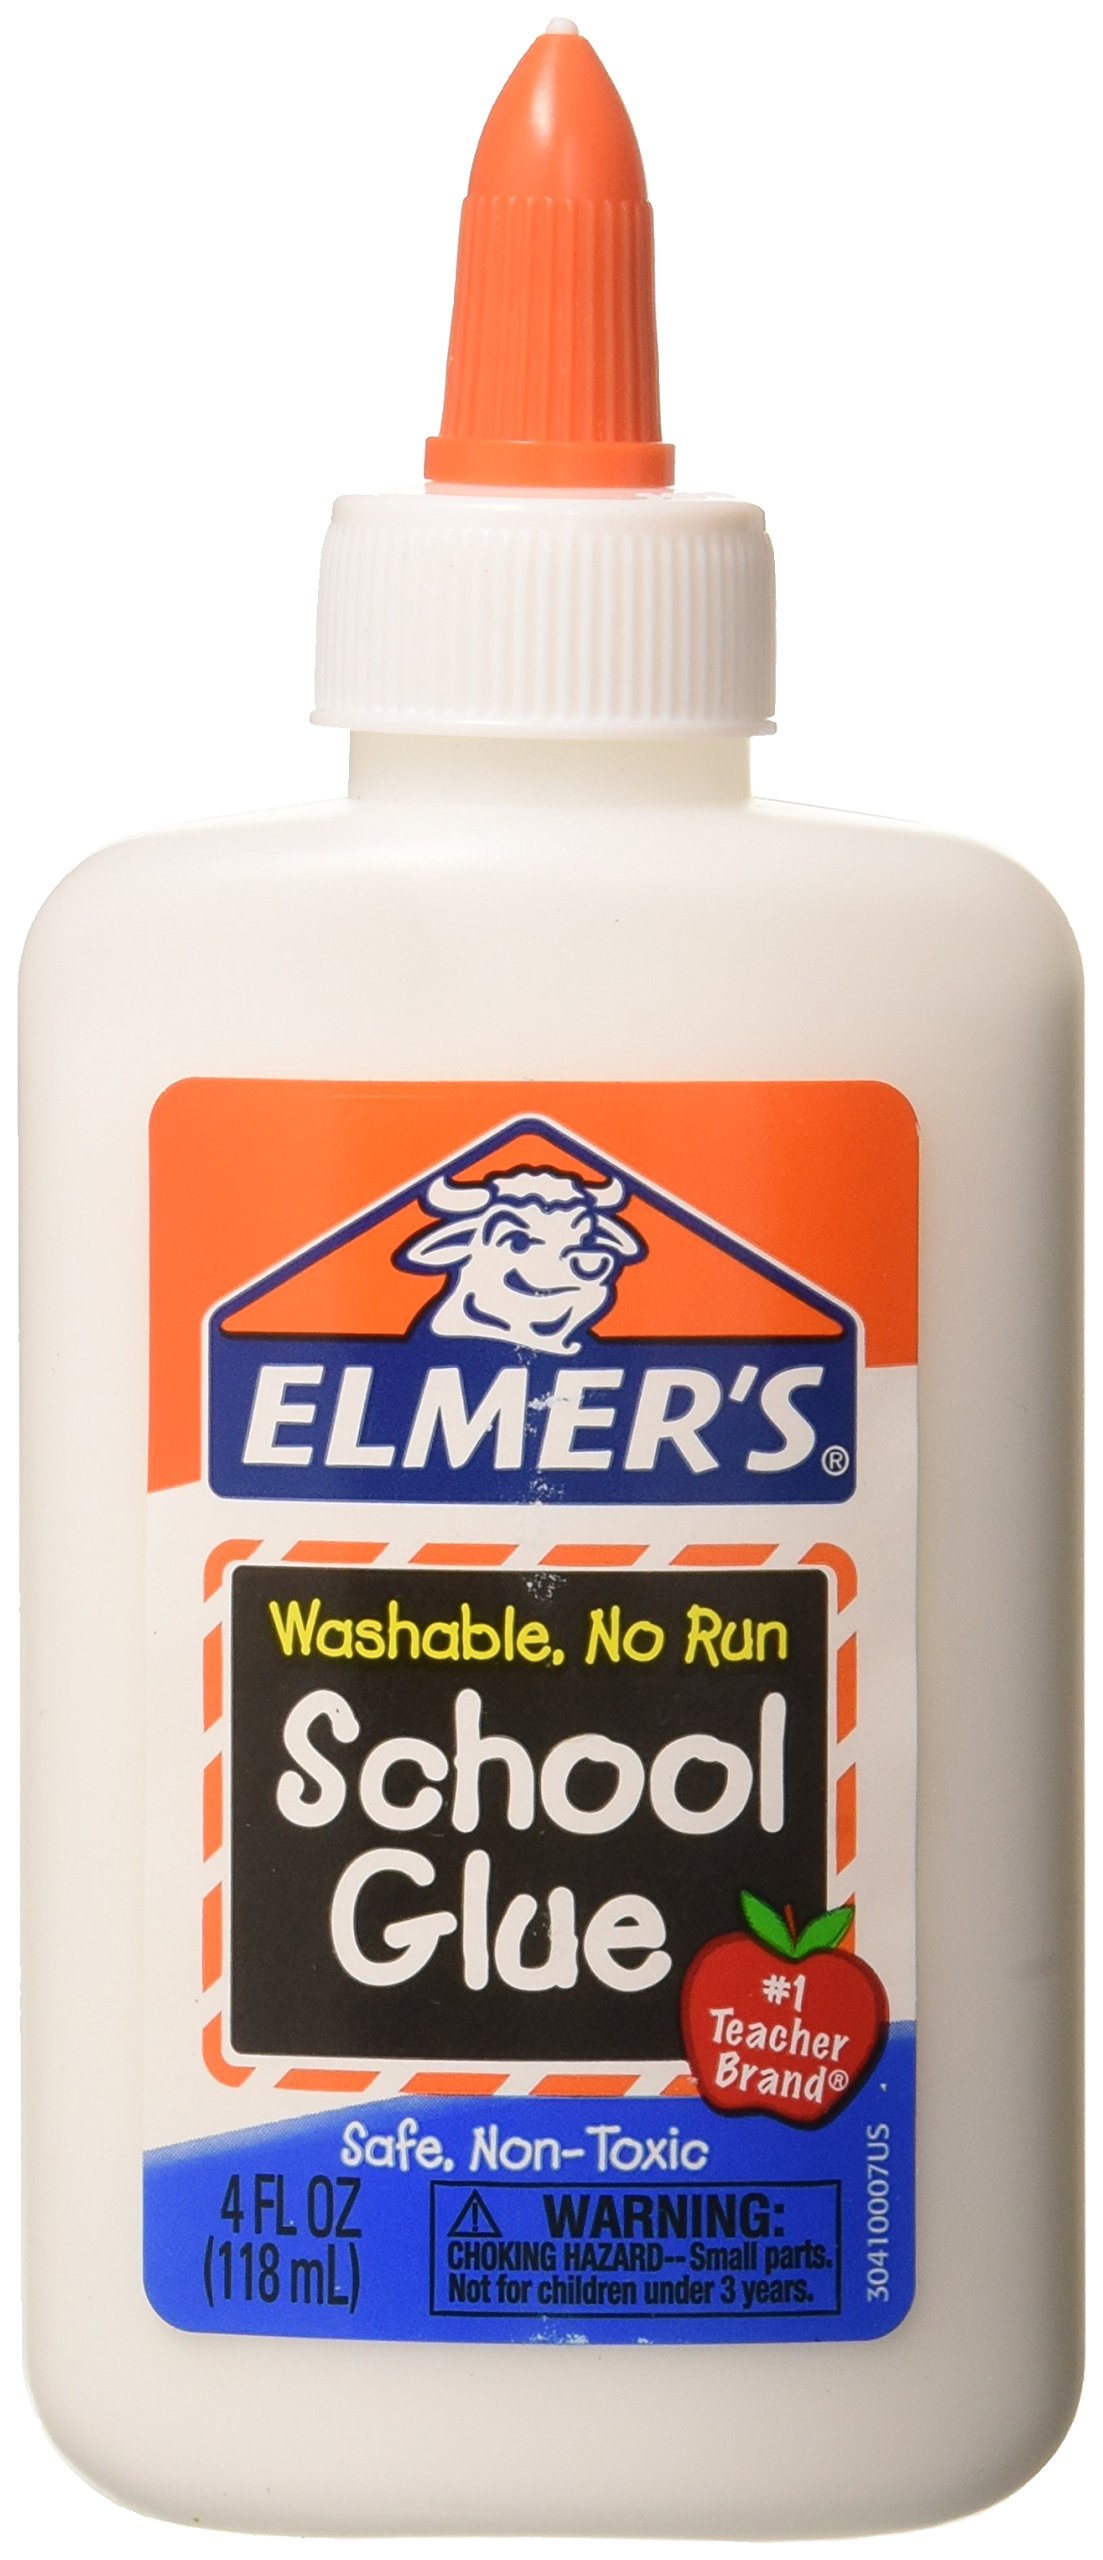 Elmer's Washable School Glue 4 Fl Oz/118 Ml (Pack of 12) (D132) (E304-12PK)